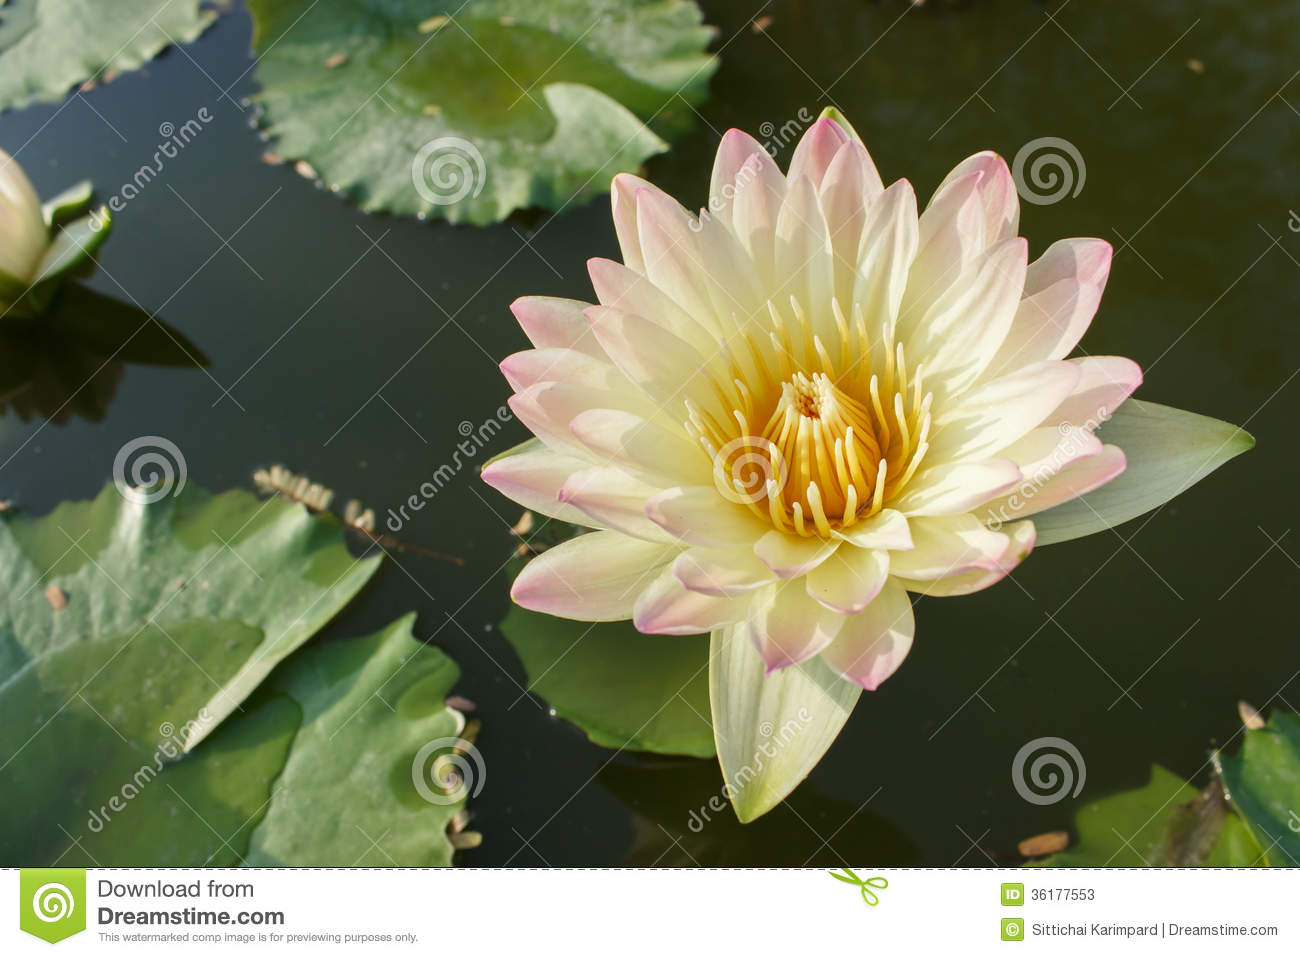 Lotus flower stock image image of blooming flora floral 36177553 lotus flower izmirmasajfo